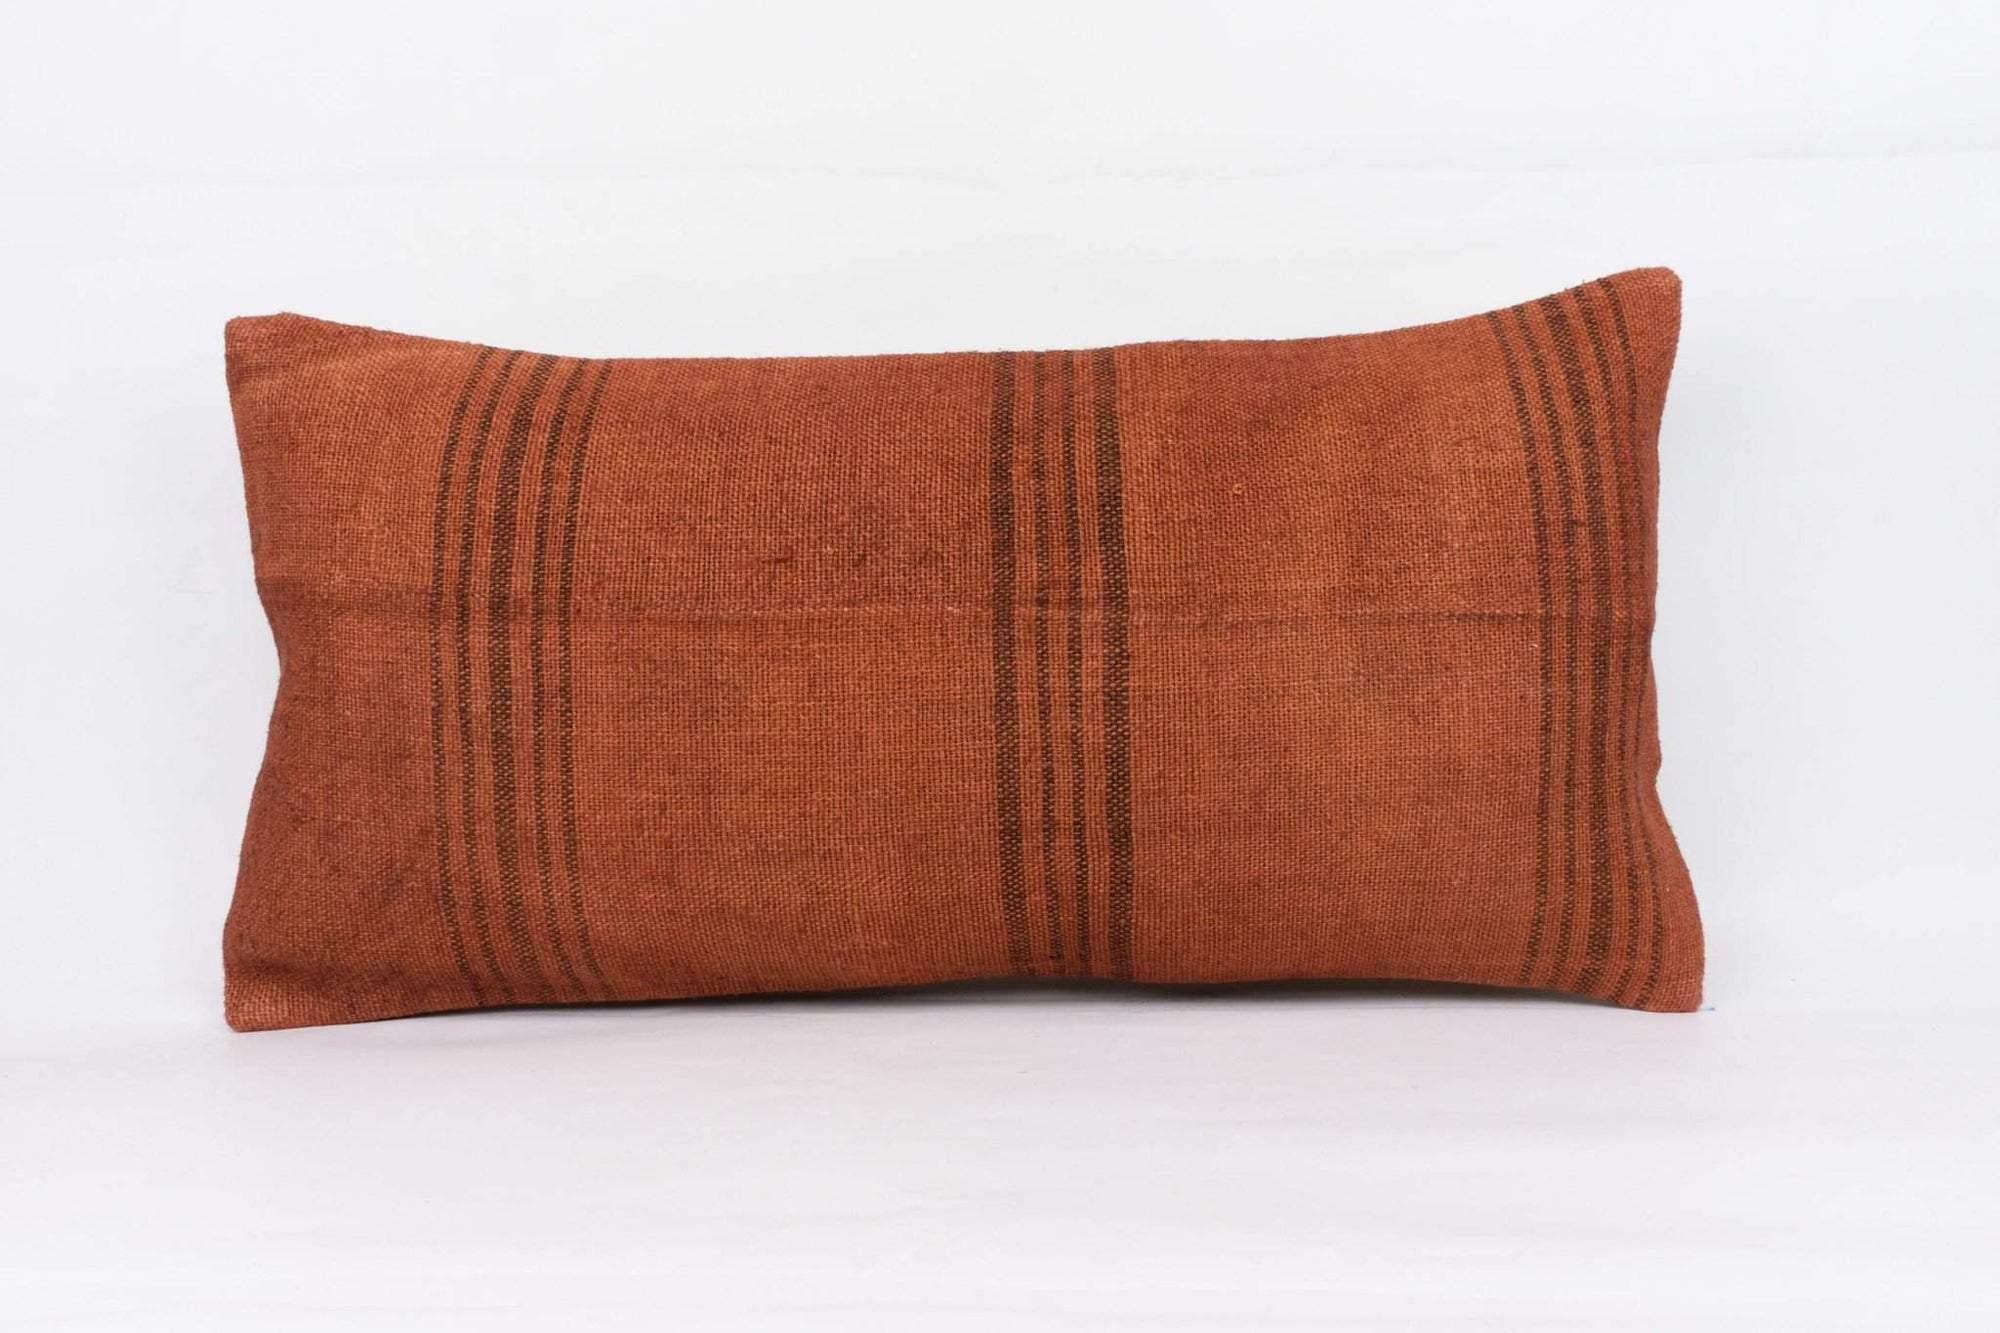 Plain Brown Kilim Pillow Cover 12x24 4186